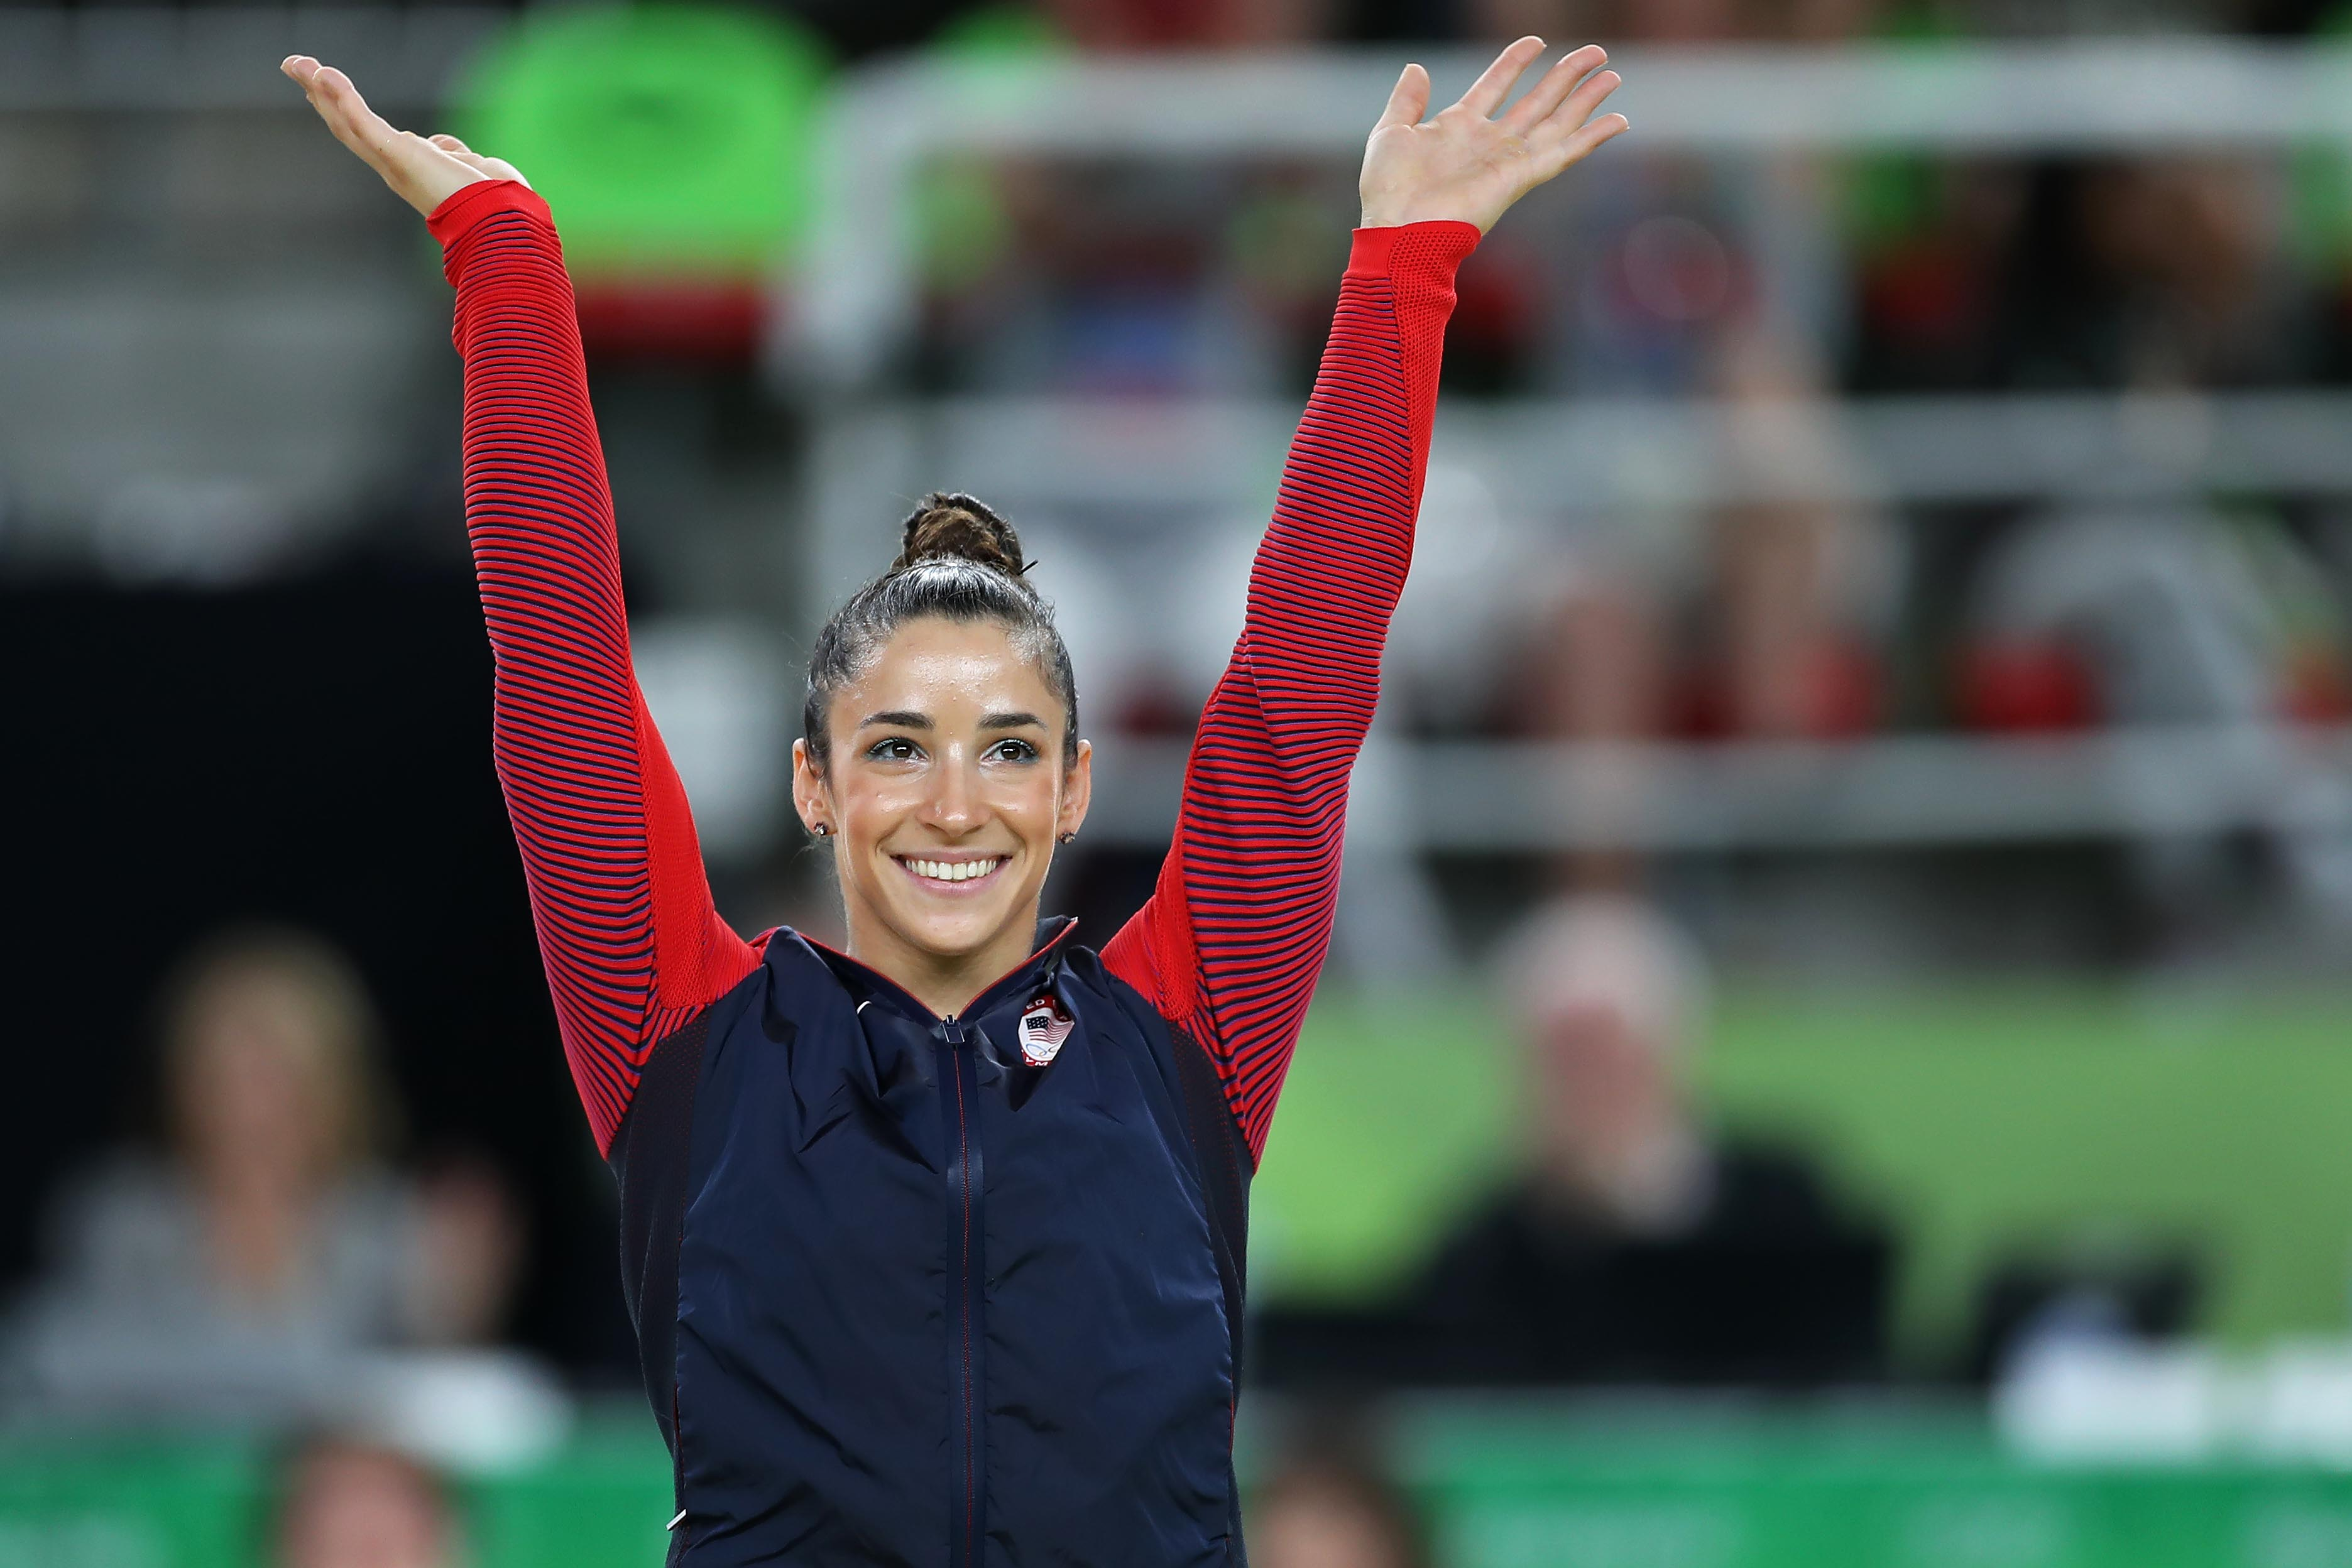 Aly Raisman at Rio 2016 Olympic Games, Artistic Gymnastics, Women's Floor Exercise, Rio Olympic Arena, Brazil - 16 Aug 2016